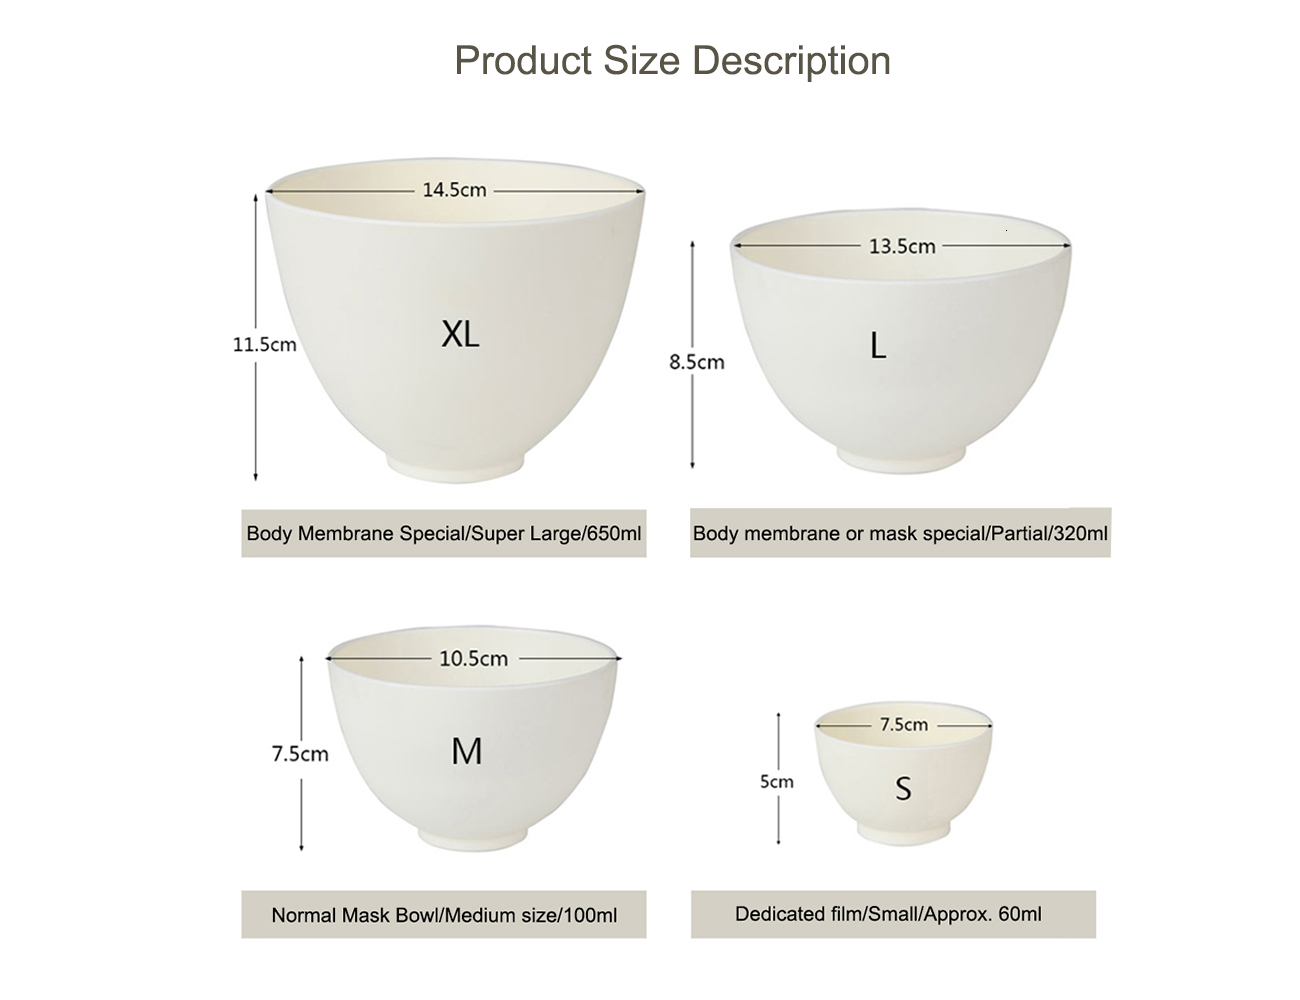 Elitzia ETBWP001 Mask Tools Silicone Soft Mask Bowl Adjust Film Bowl Set Beauty Salon Soft Film Powder Necessary Supplies White Color 4 Size